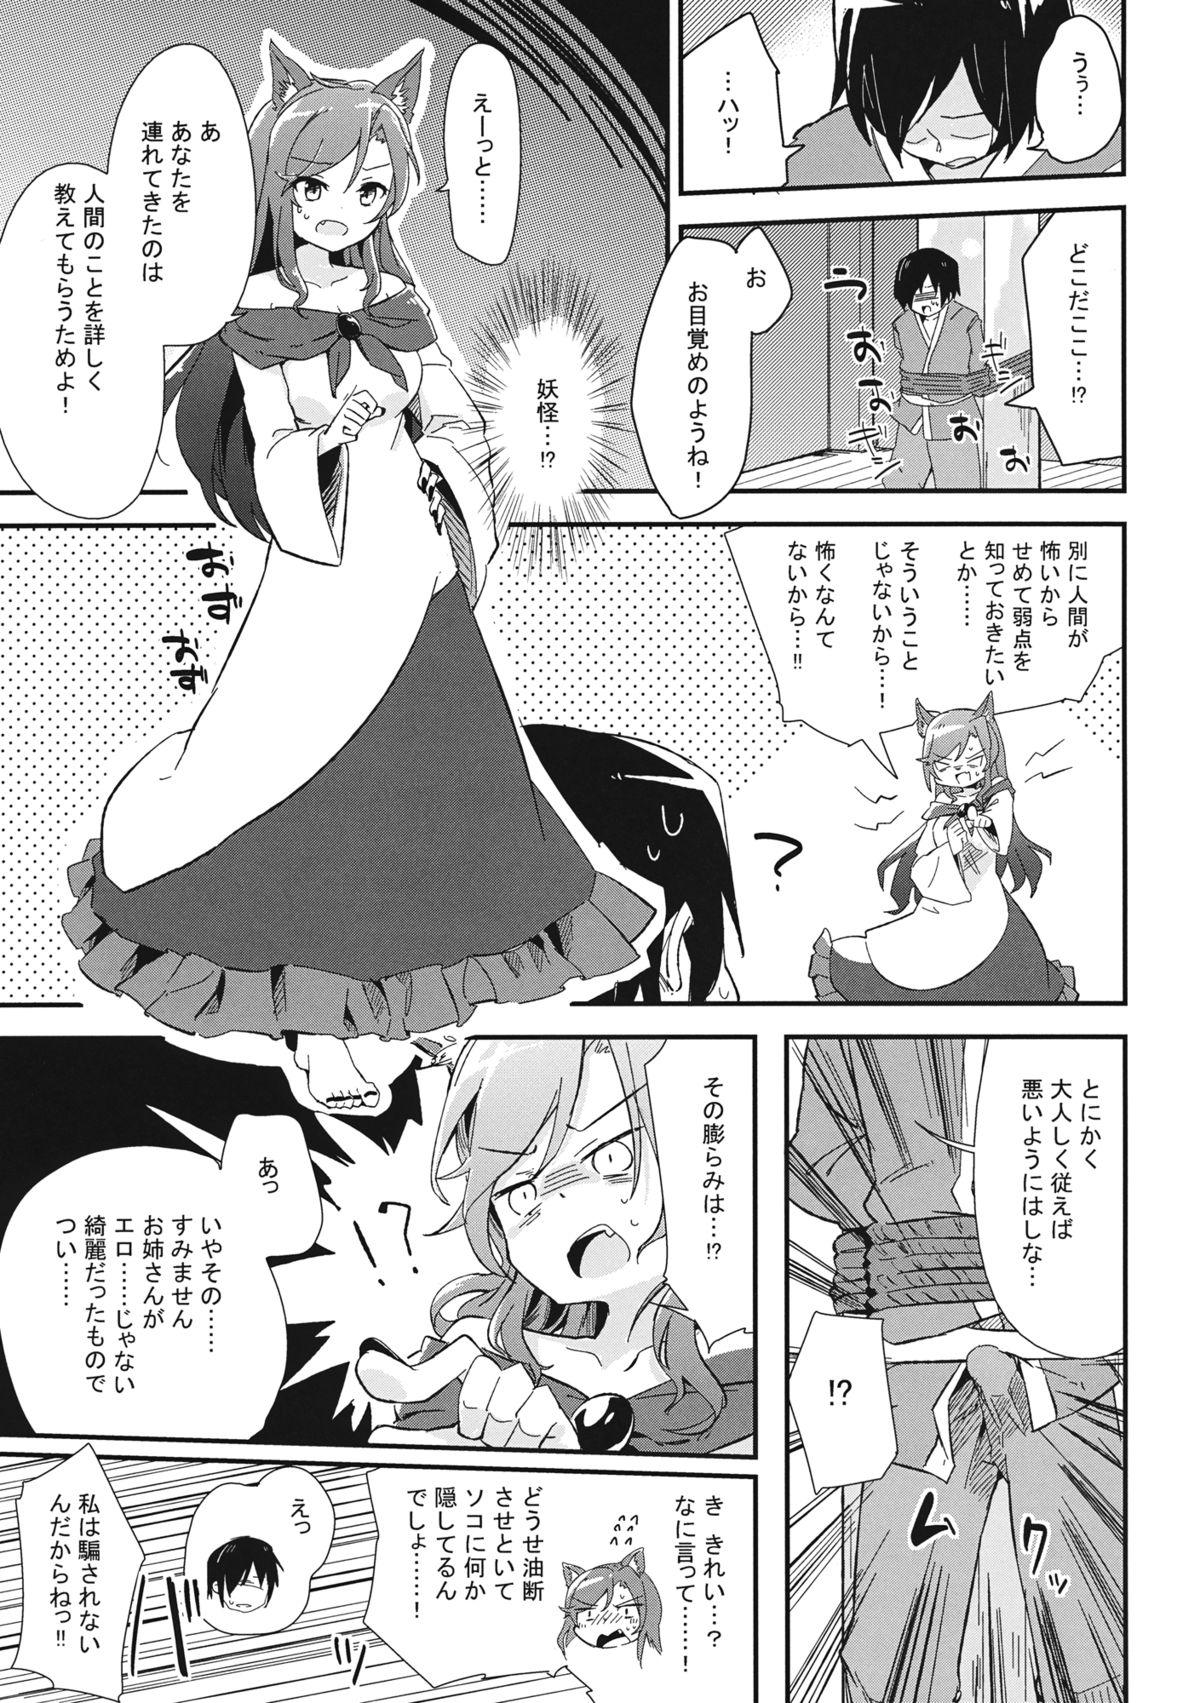 Touhou Muchi Shichu Goudou - Toho joint magazine sex in the ignorant situations 16